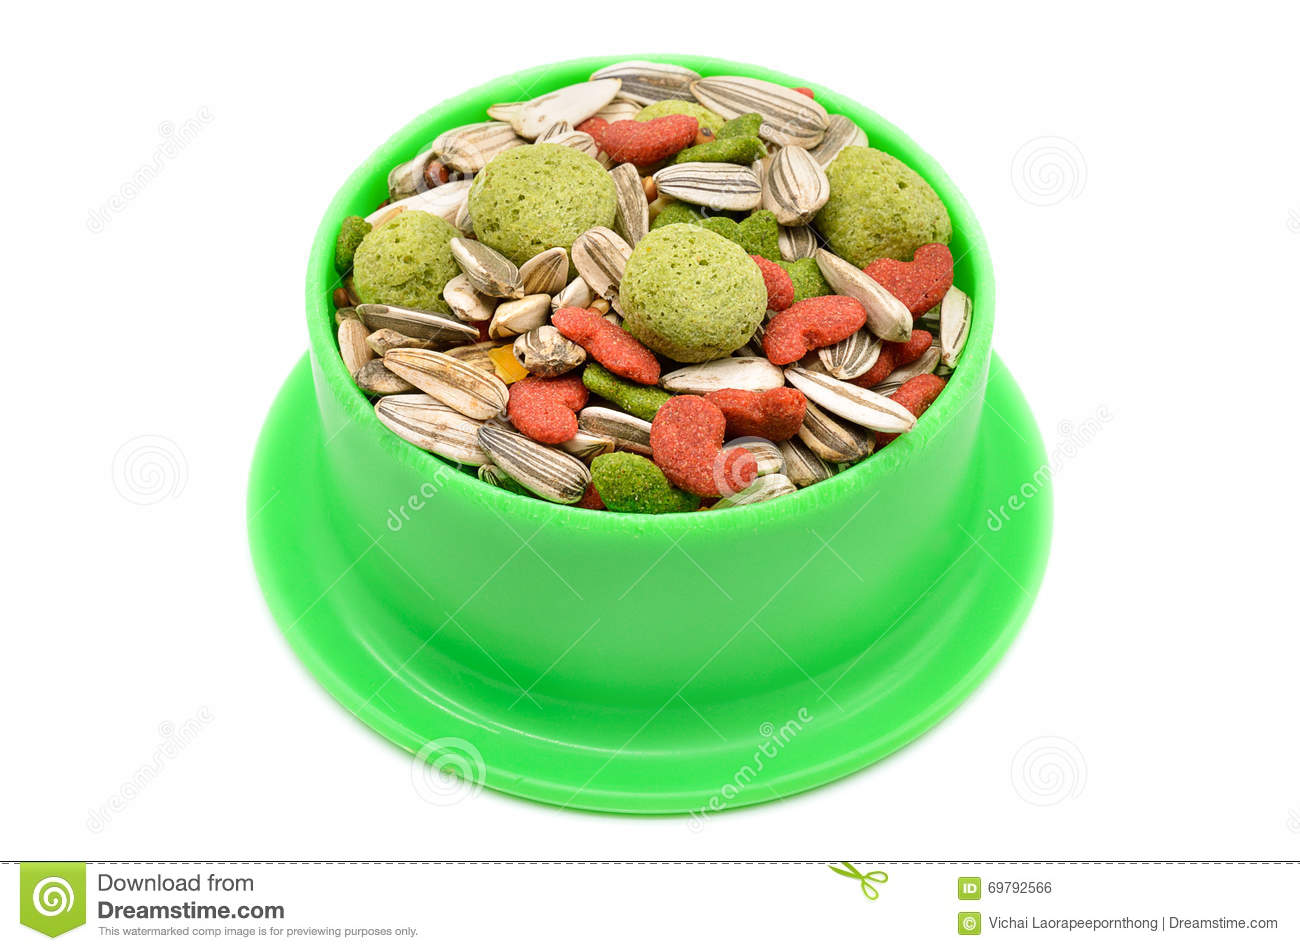 Best Hamster Food To Buy